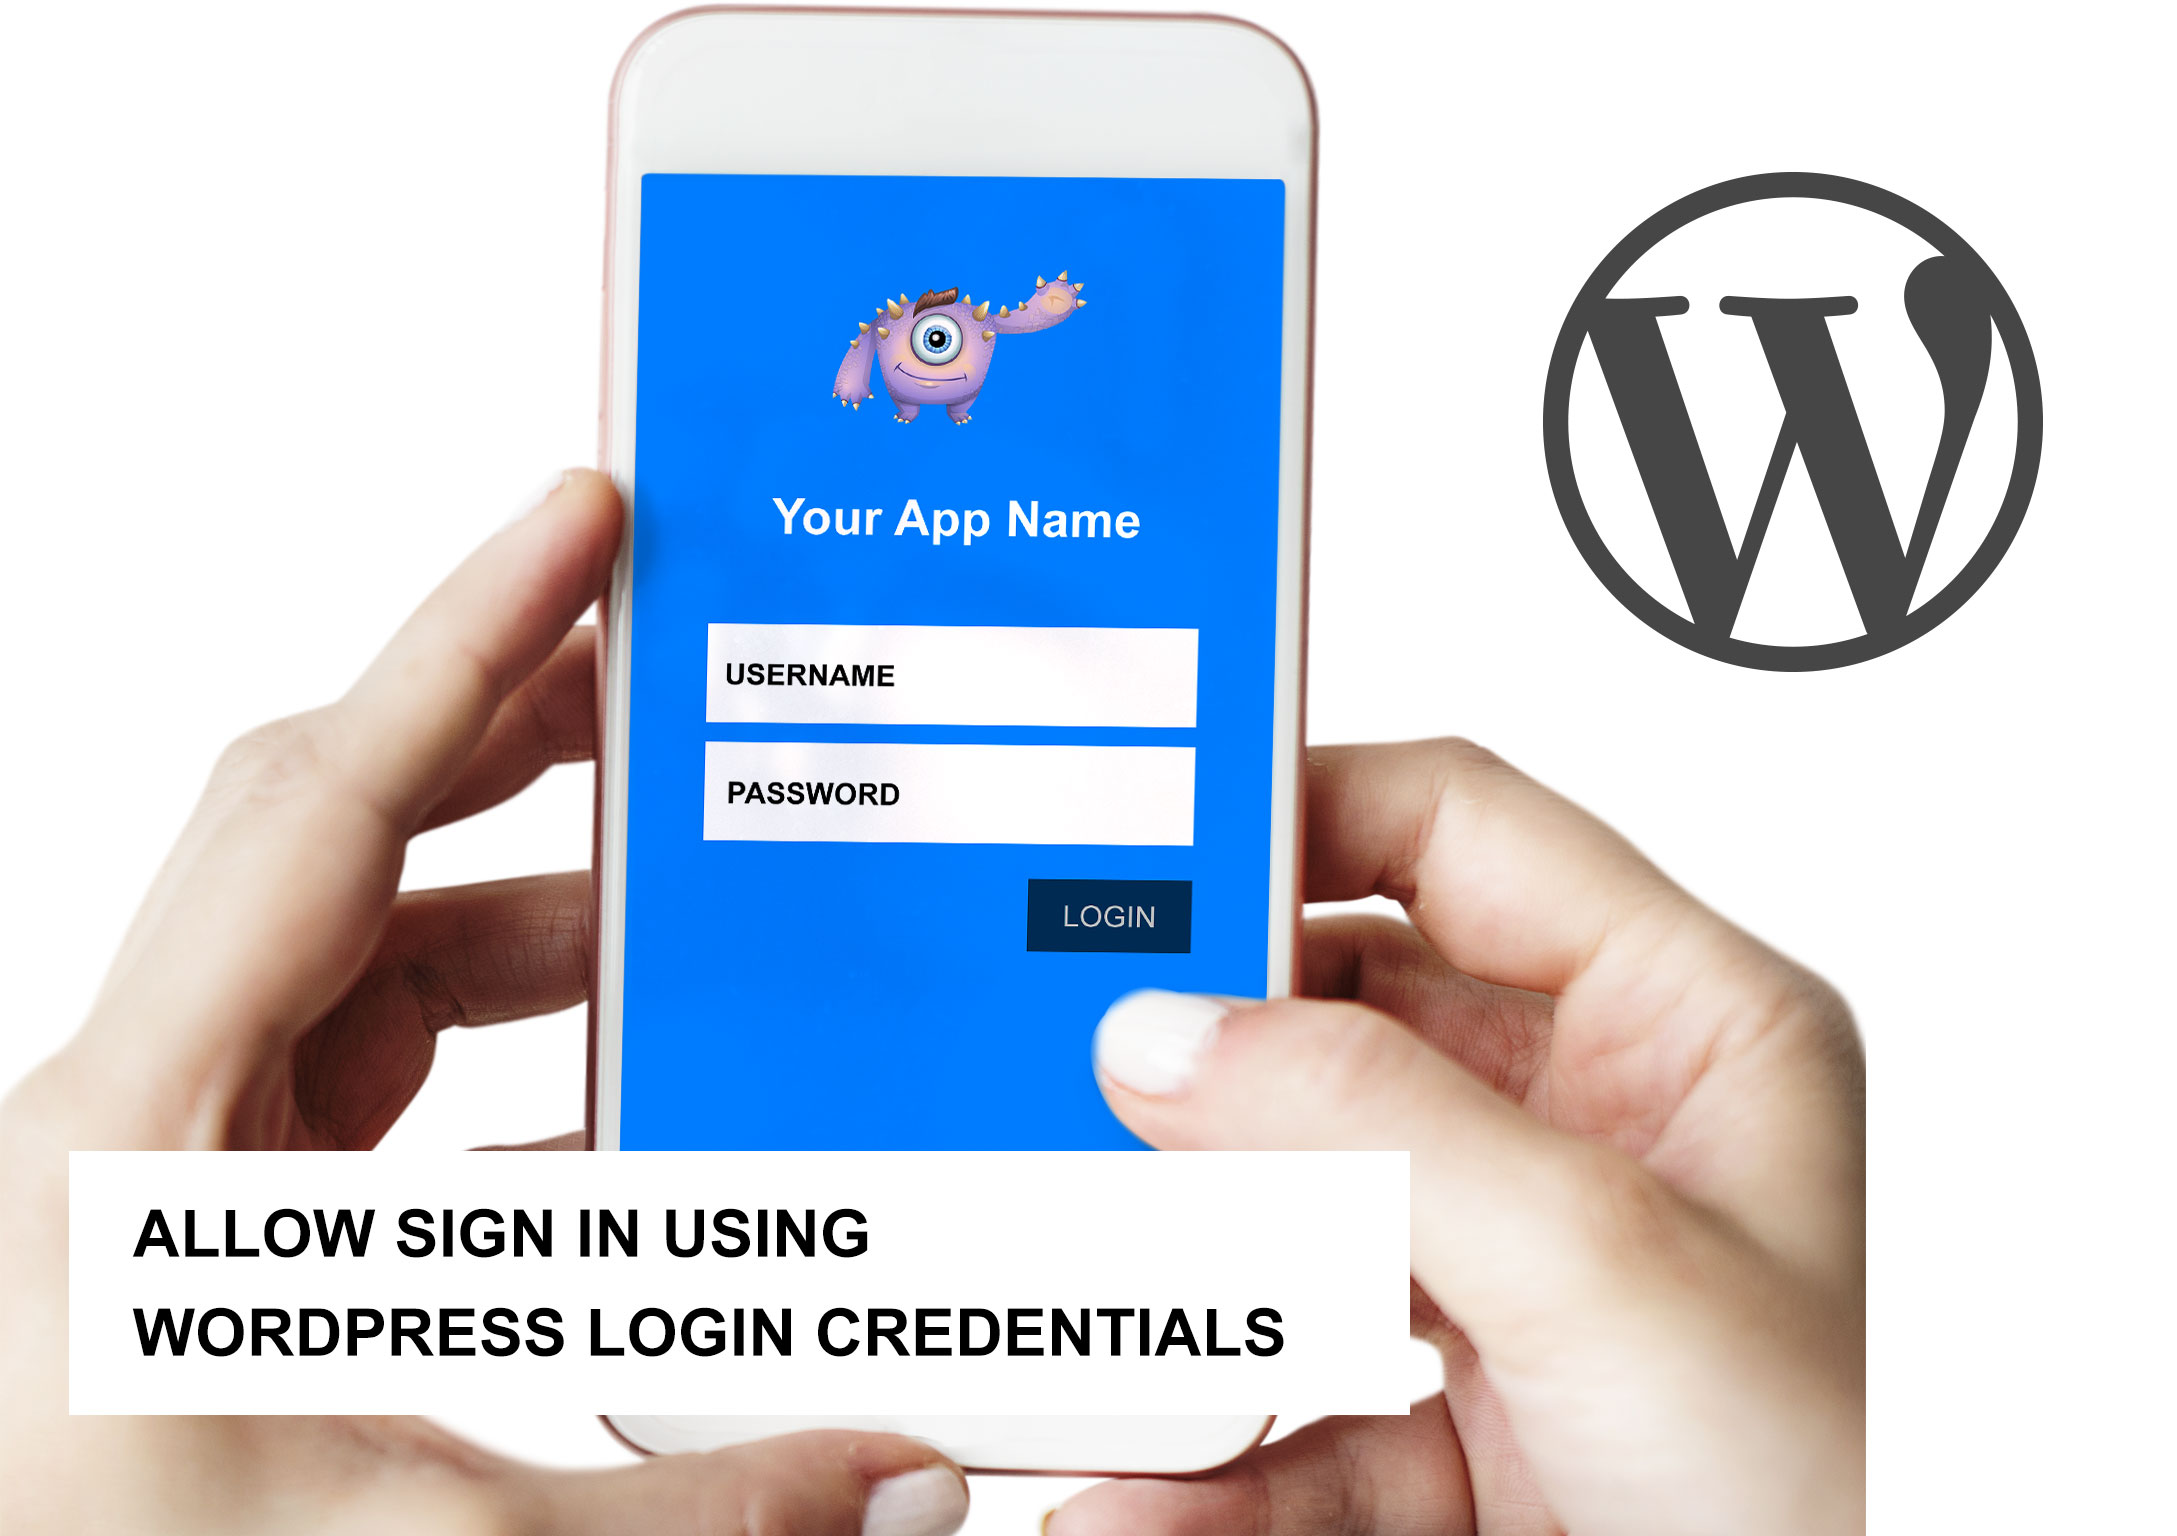 Log in to a mobile app using WordPress Credentials.